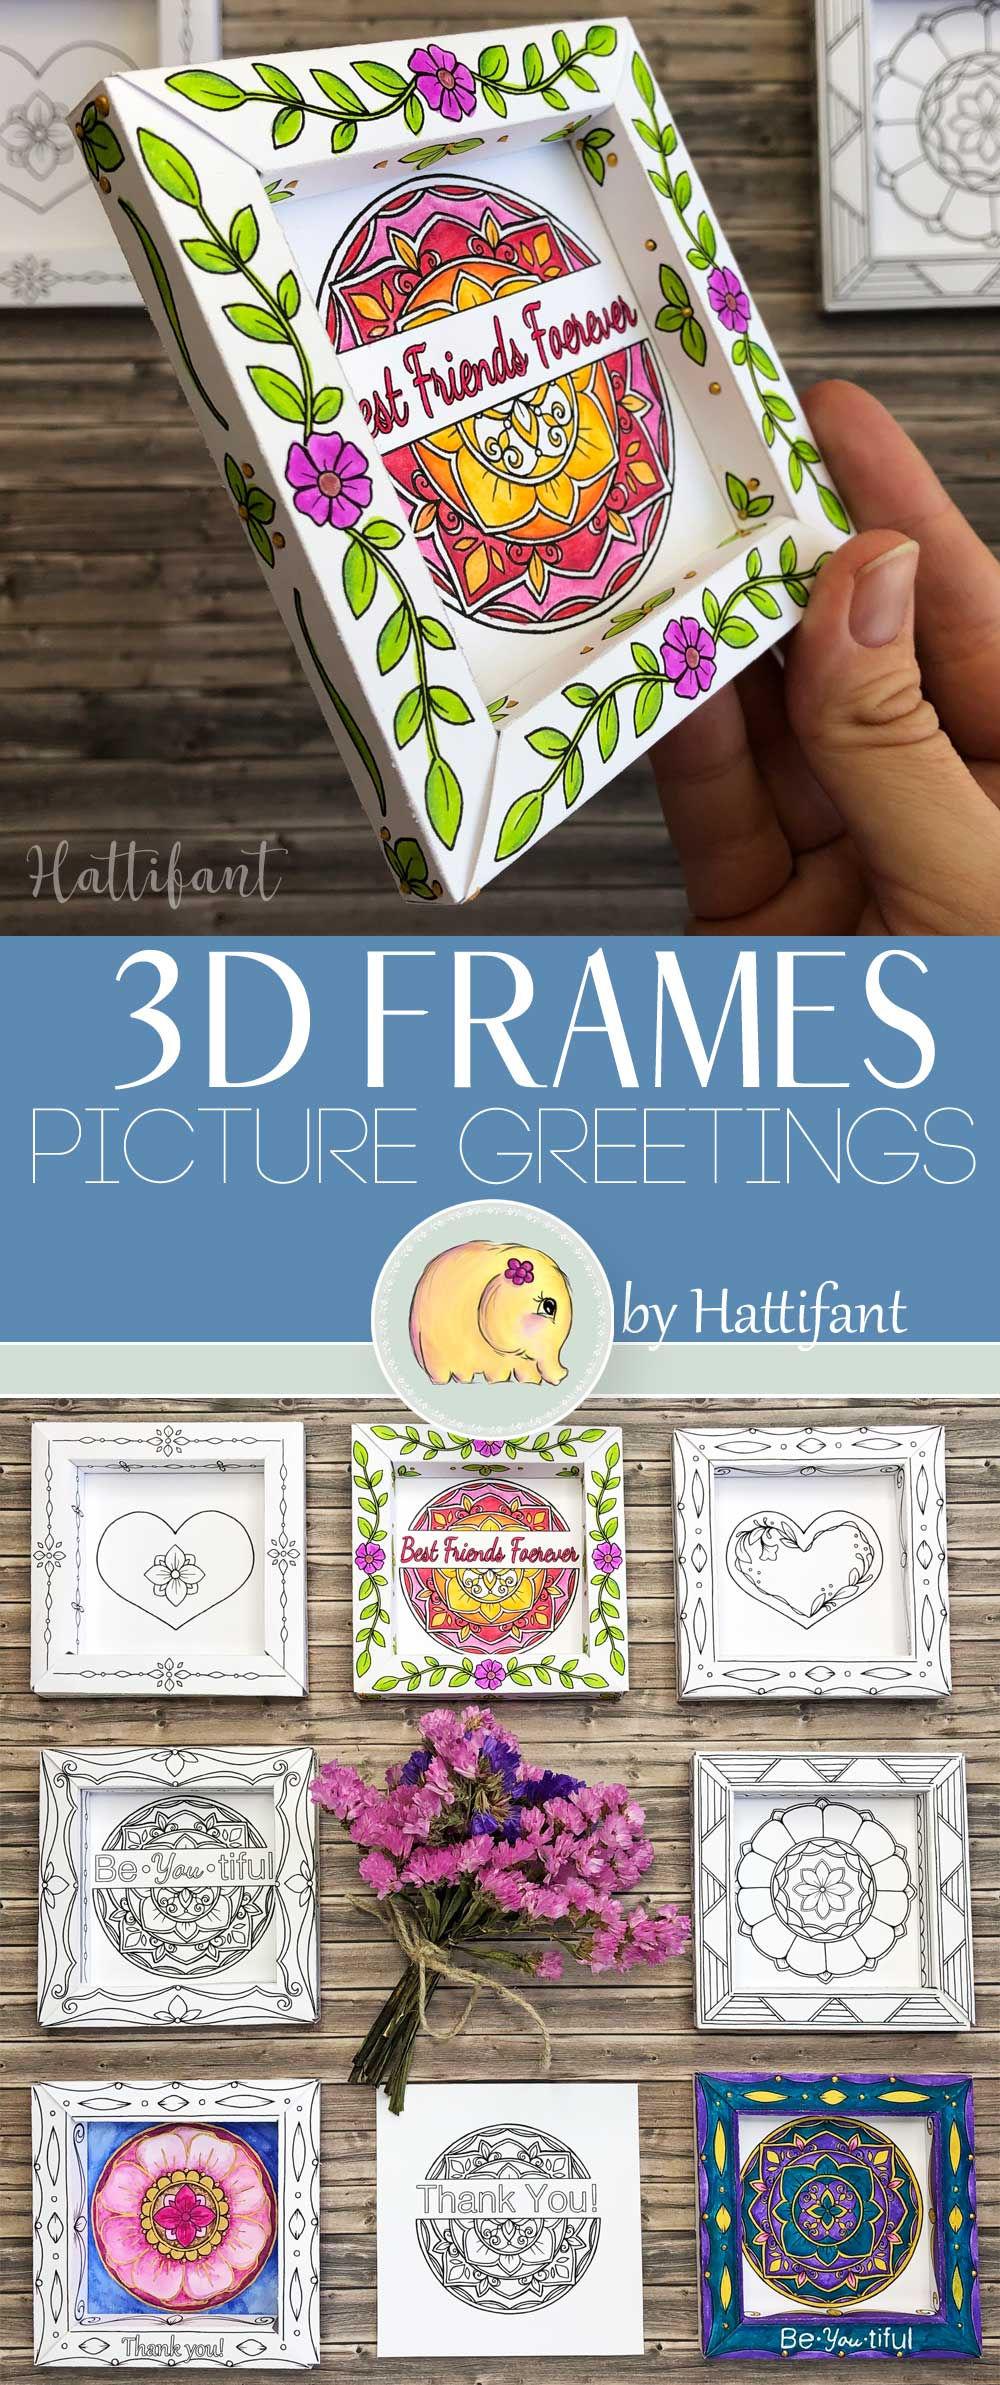 Hattifant's 3D Frames Valentine's Day Greetings to Color